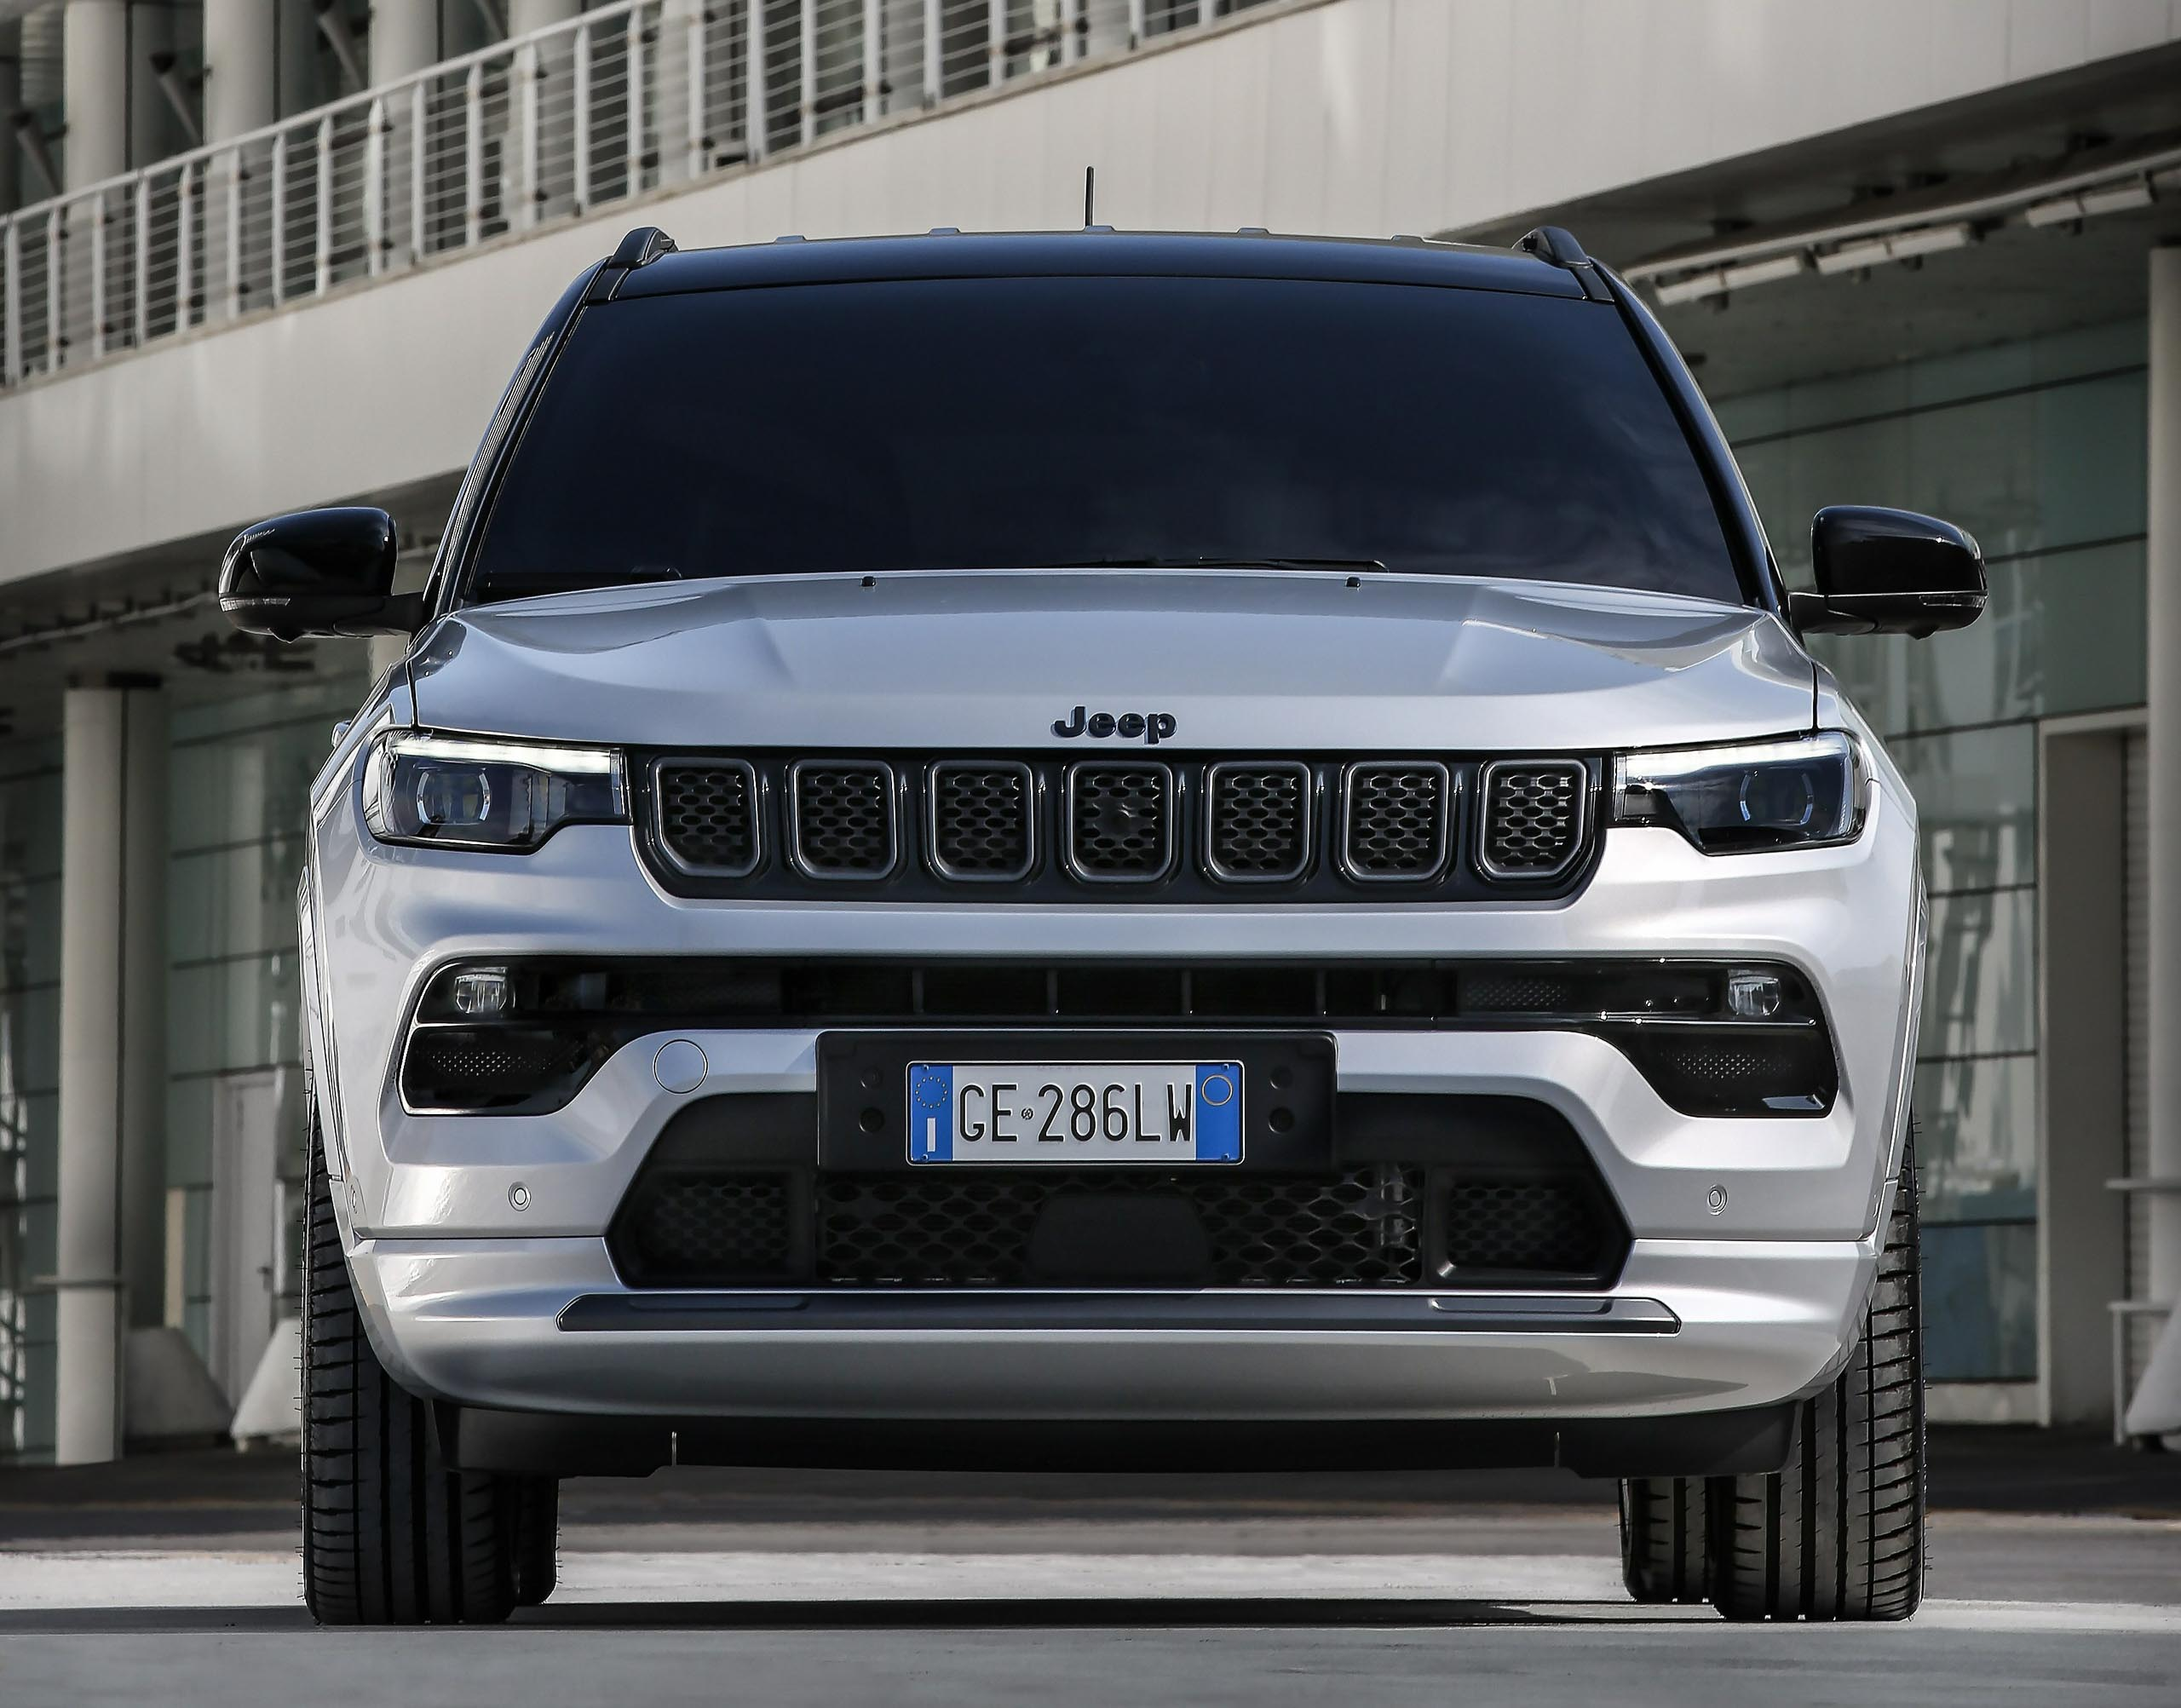 2021 Jeep Compass | Fanaticar Magazin